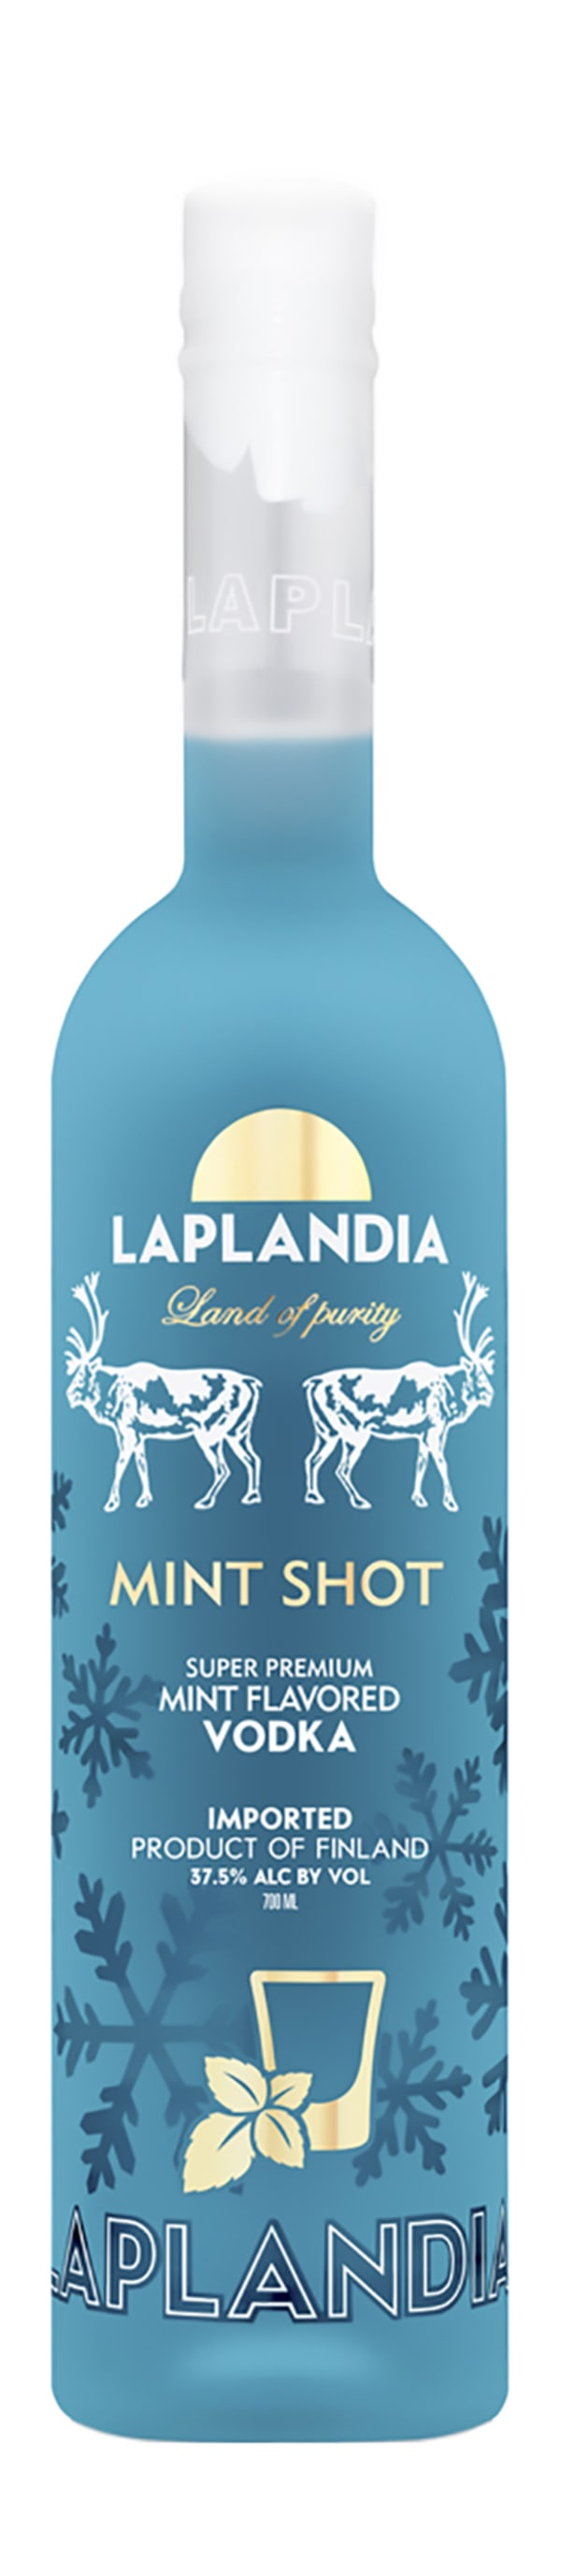 Laplandia Mint Shot Vodka